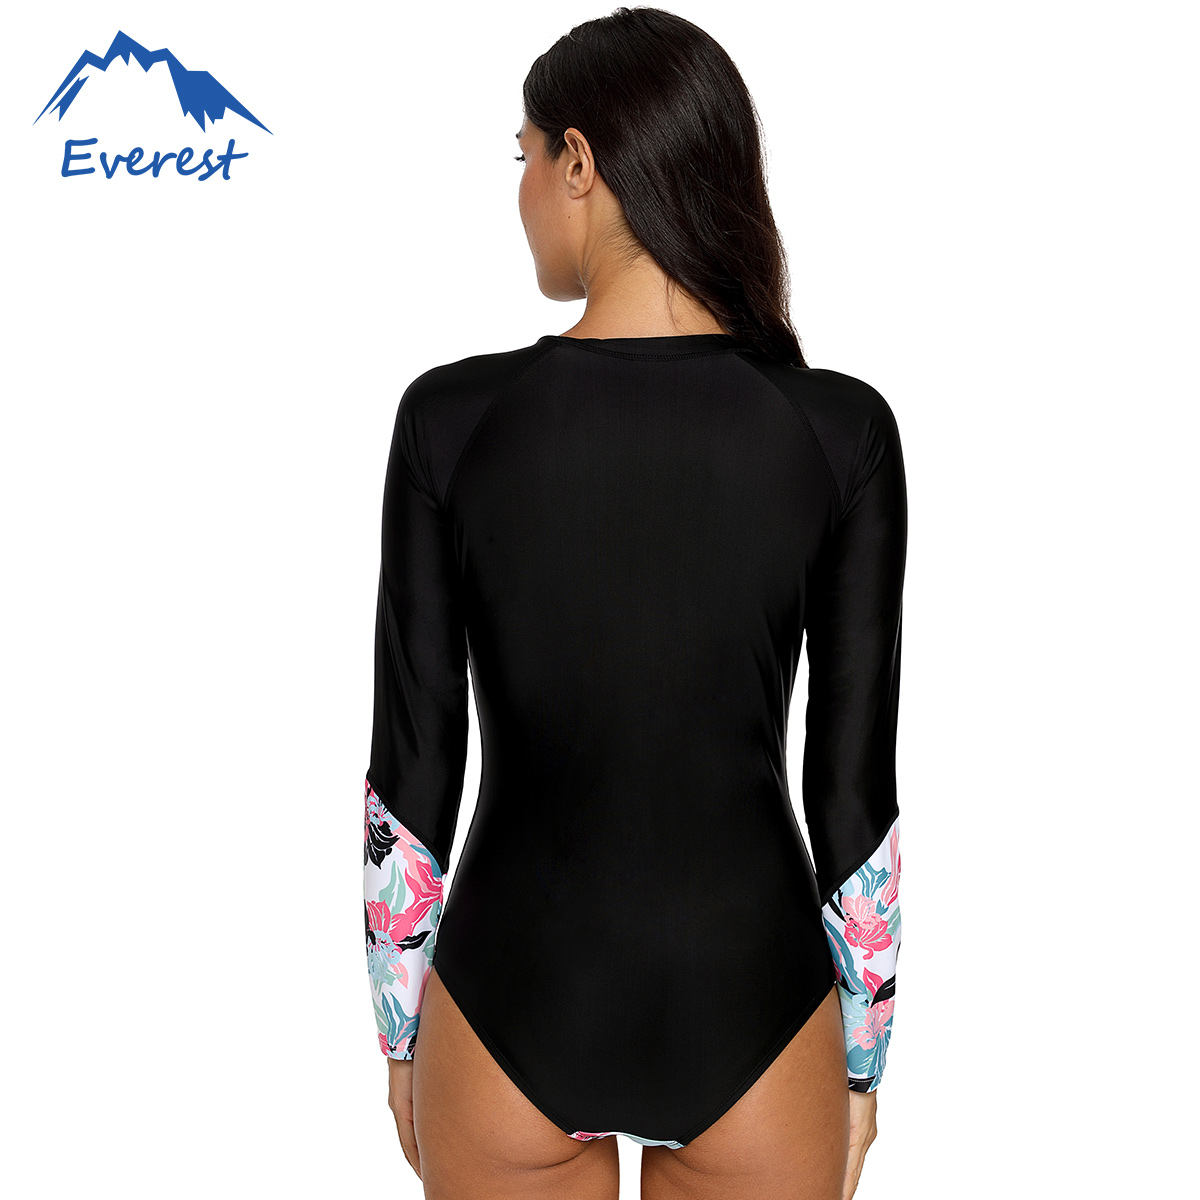 Womens Long Sleeve One Piece Swimsuit Zip Back Printed Surfing Suit Wetsuit Monokini Sun Protection Bikini